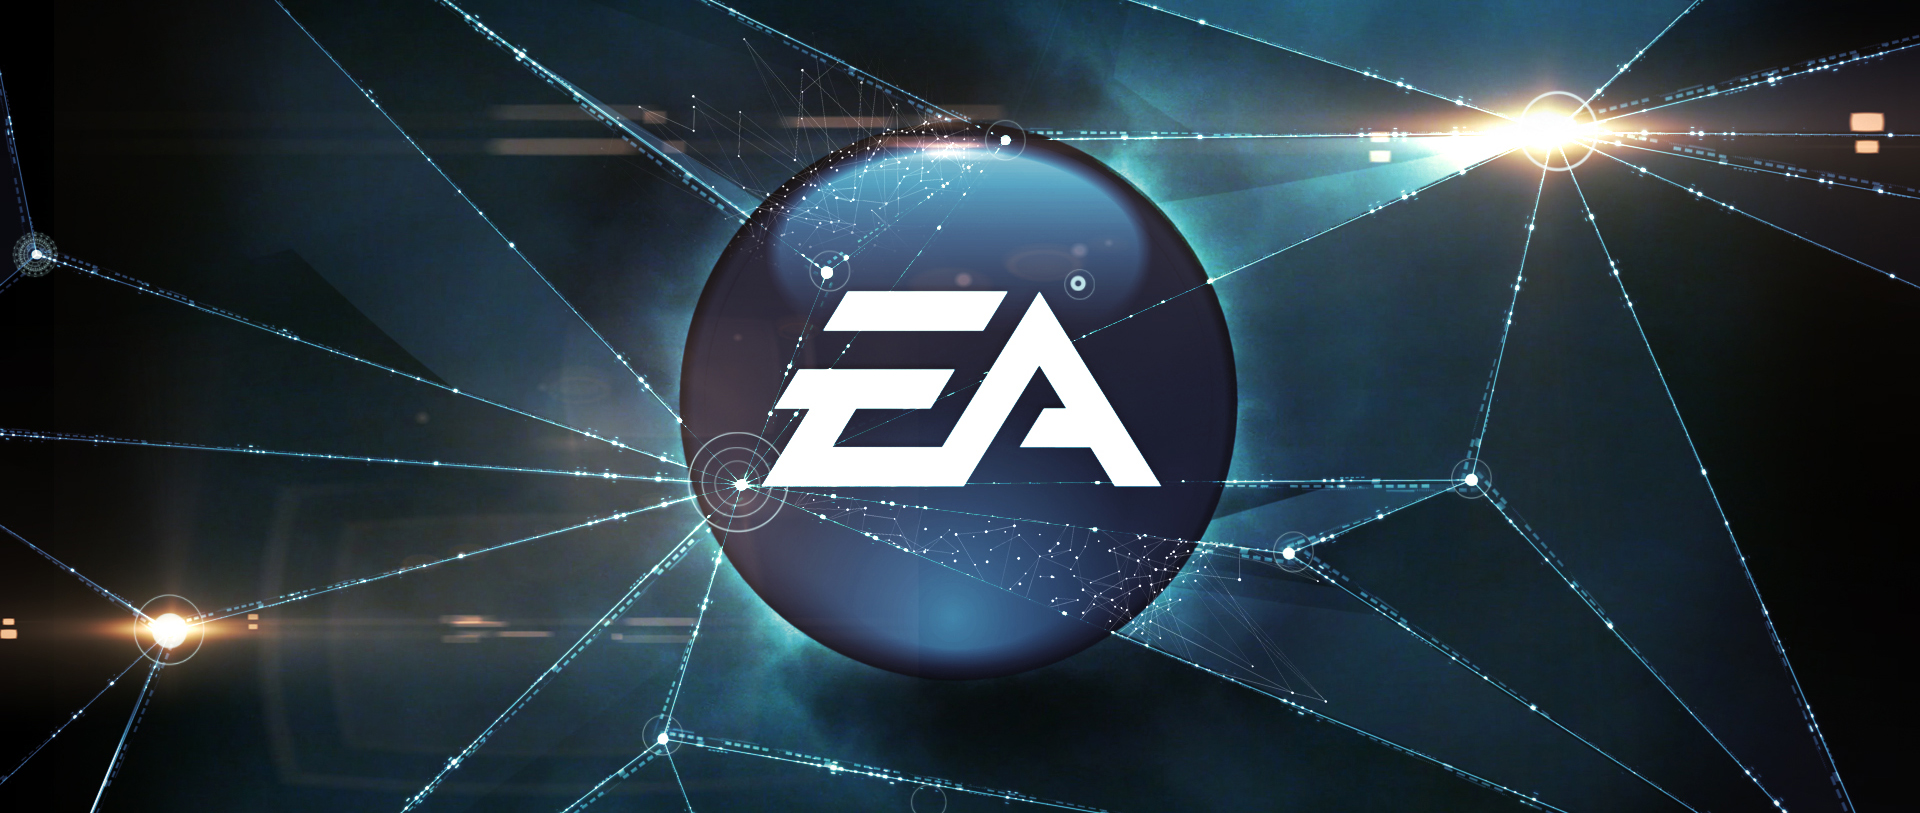 Electronic arts lanzará una nueva IP a manos de Respawn Entertainment